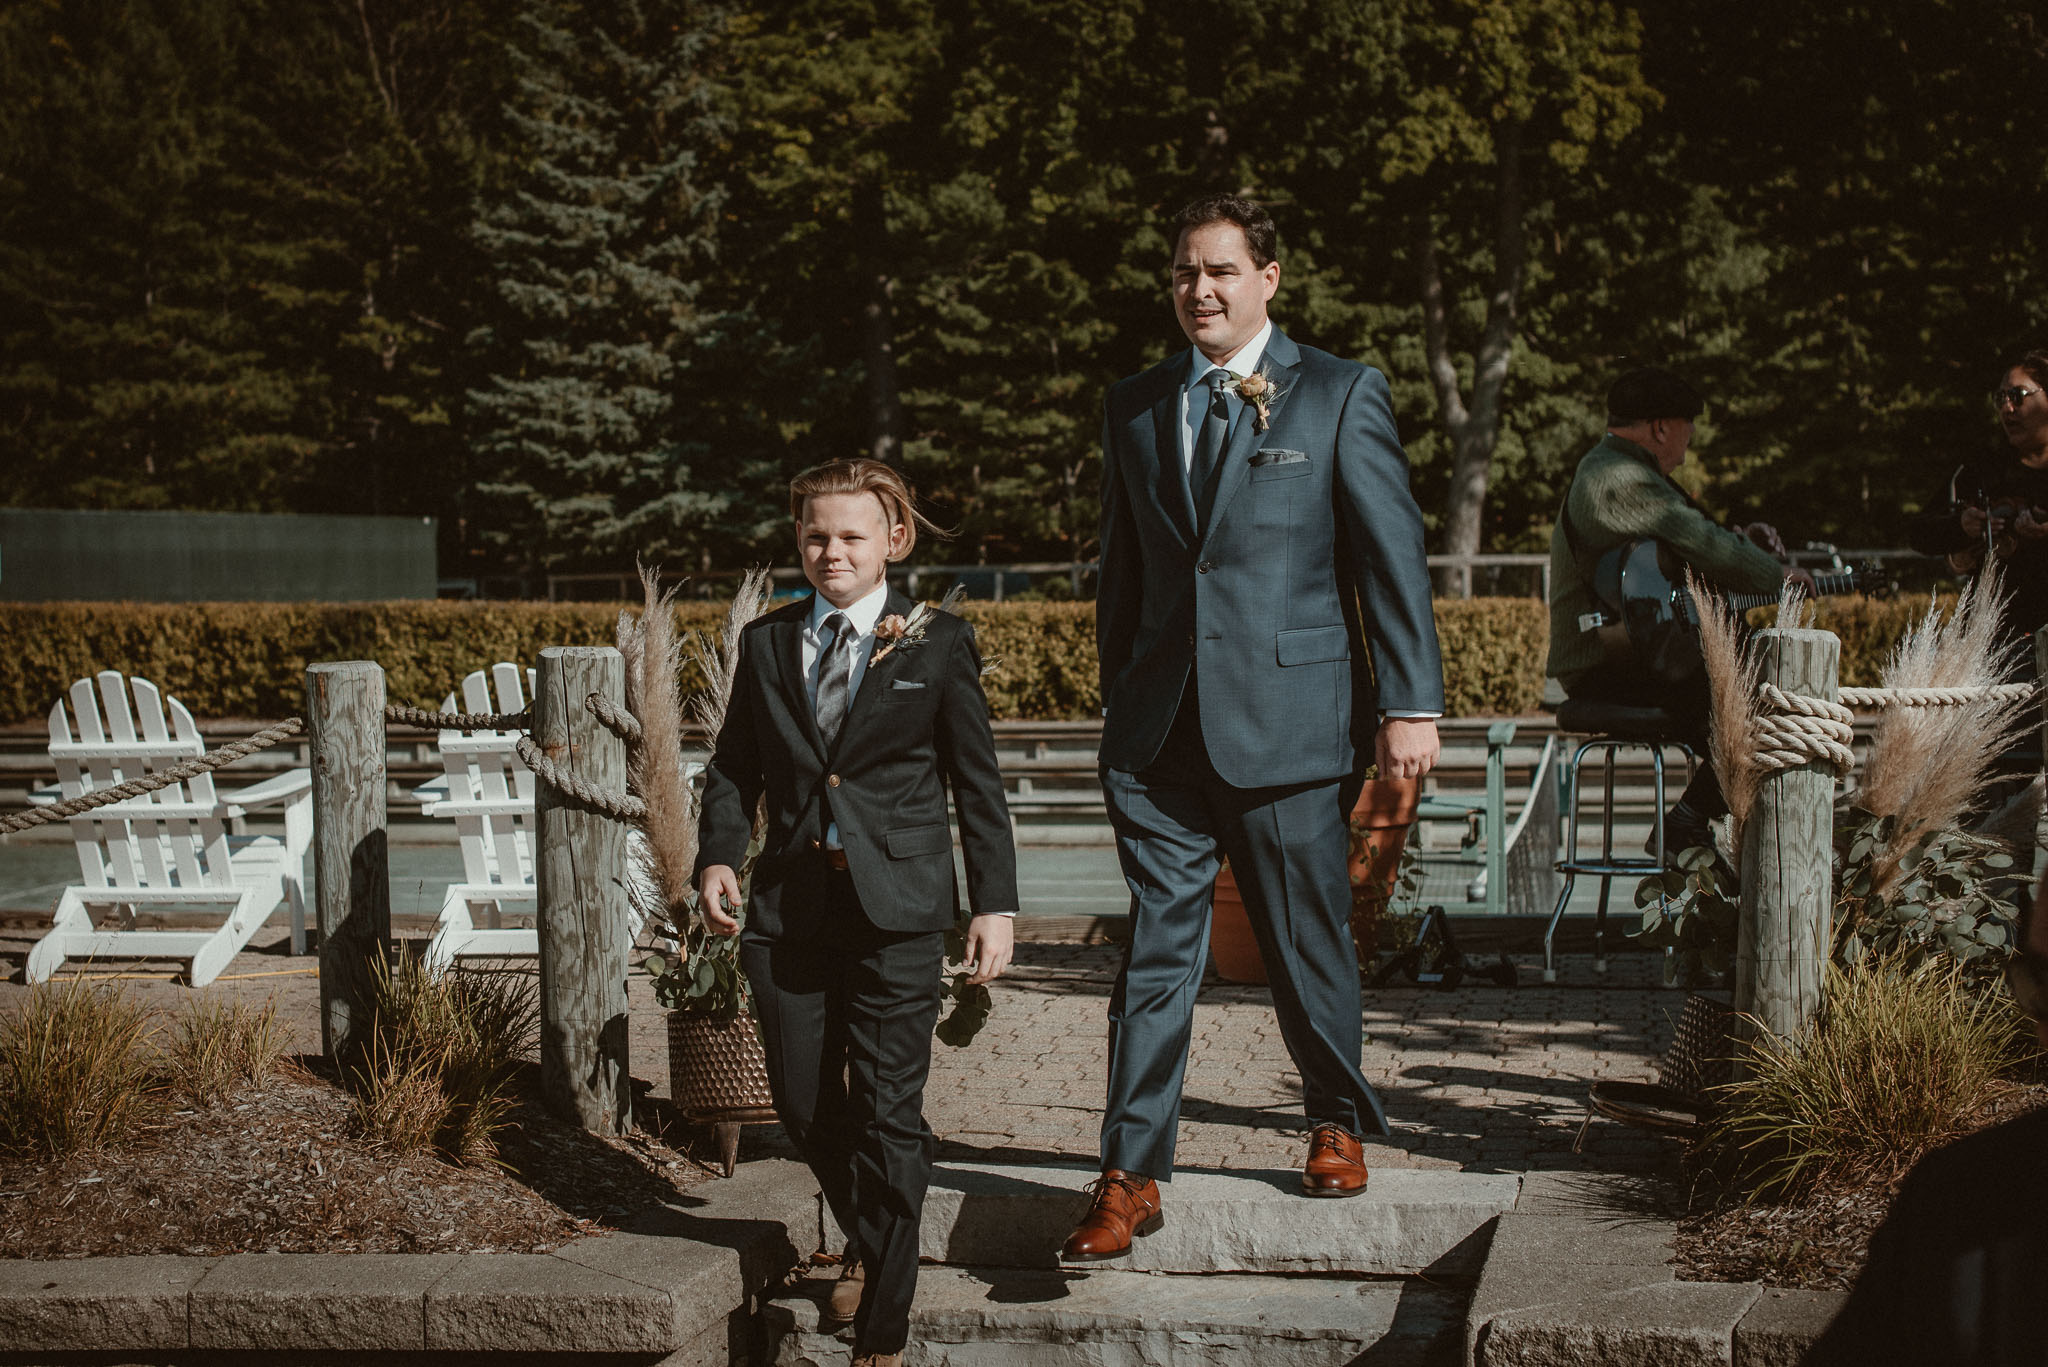 The groom's son and best friend as best men walking down the isle.